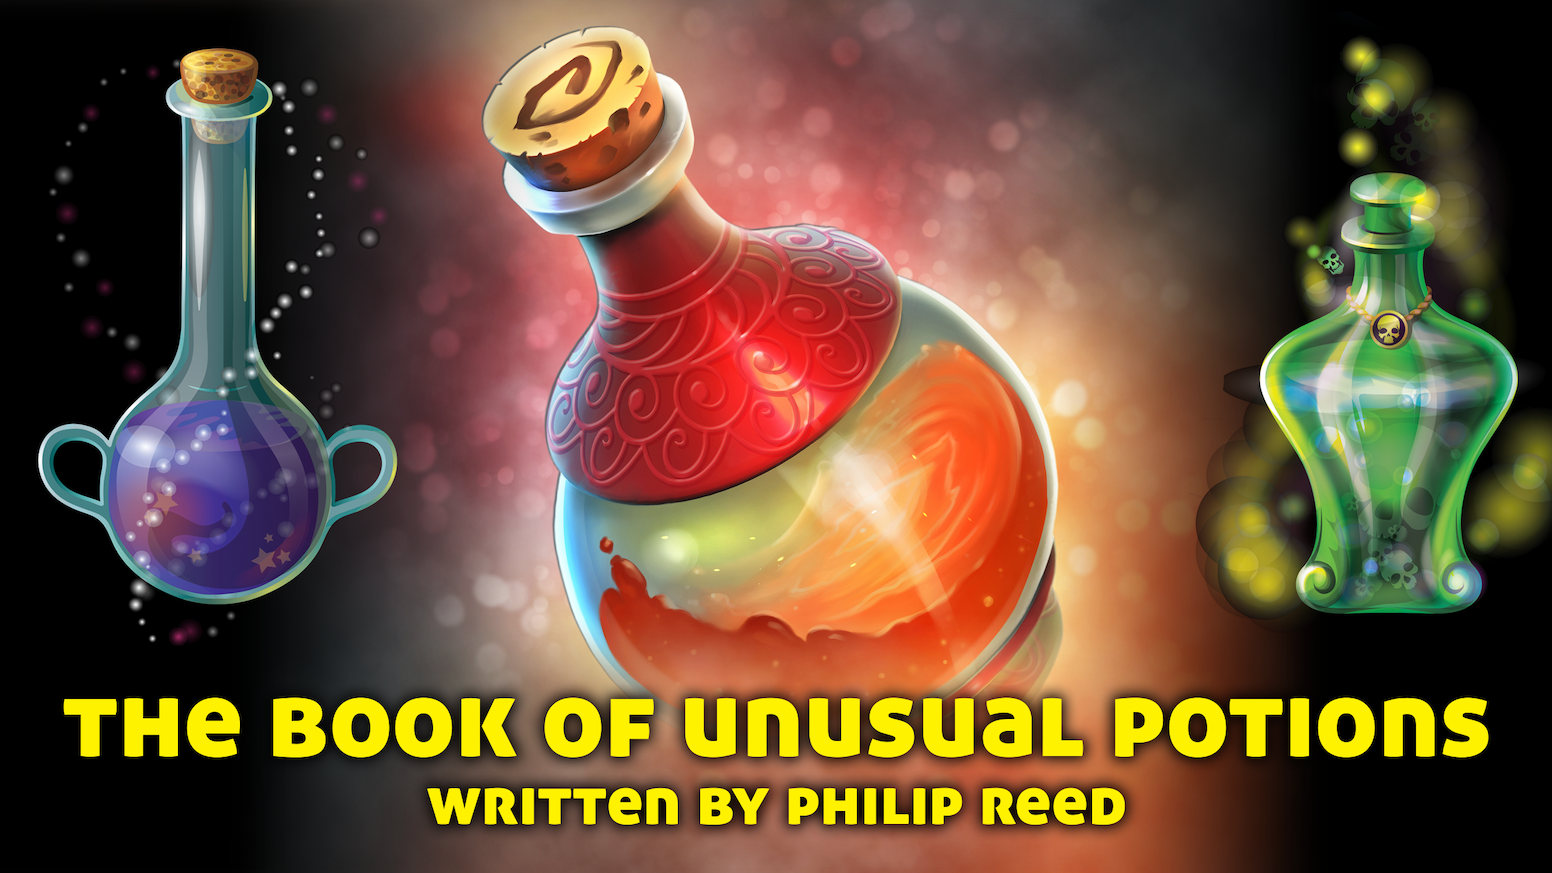 A systemless guide to potions for fantasy roleplaying games, written by Philip Reed. For use with many different games.